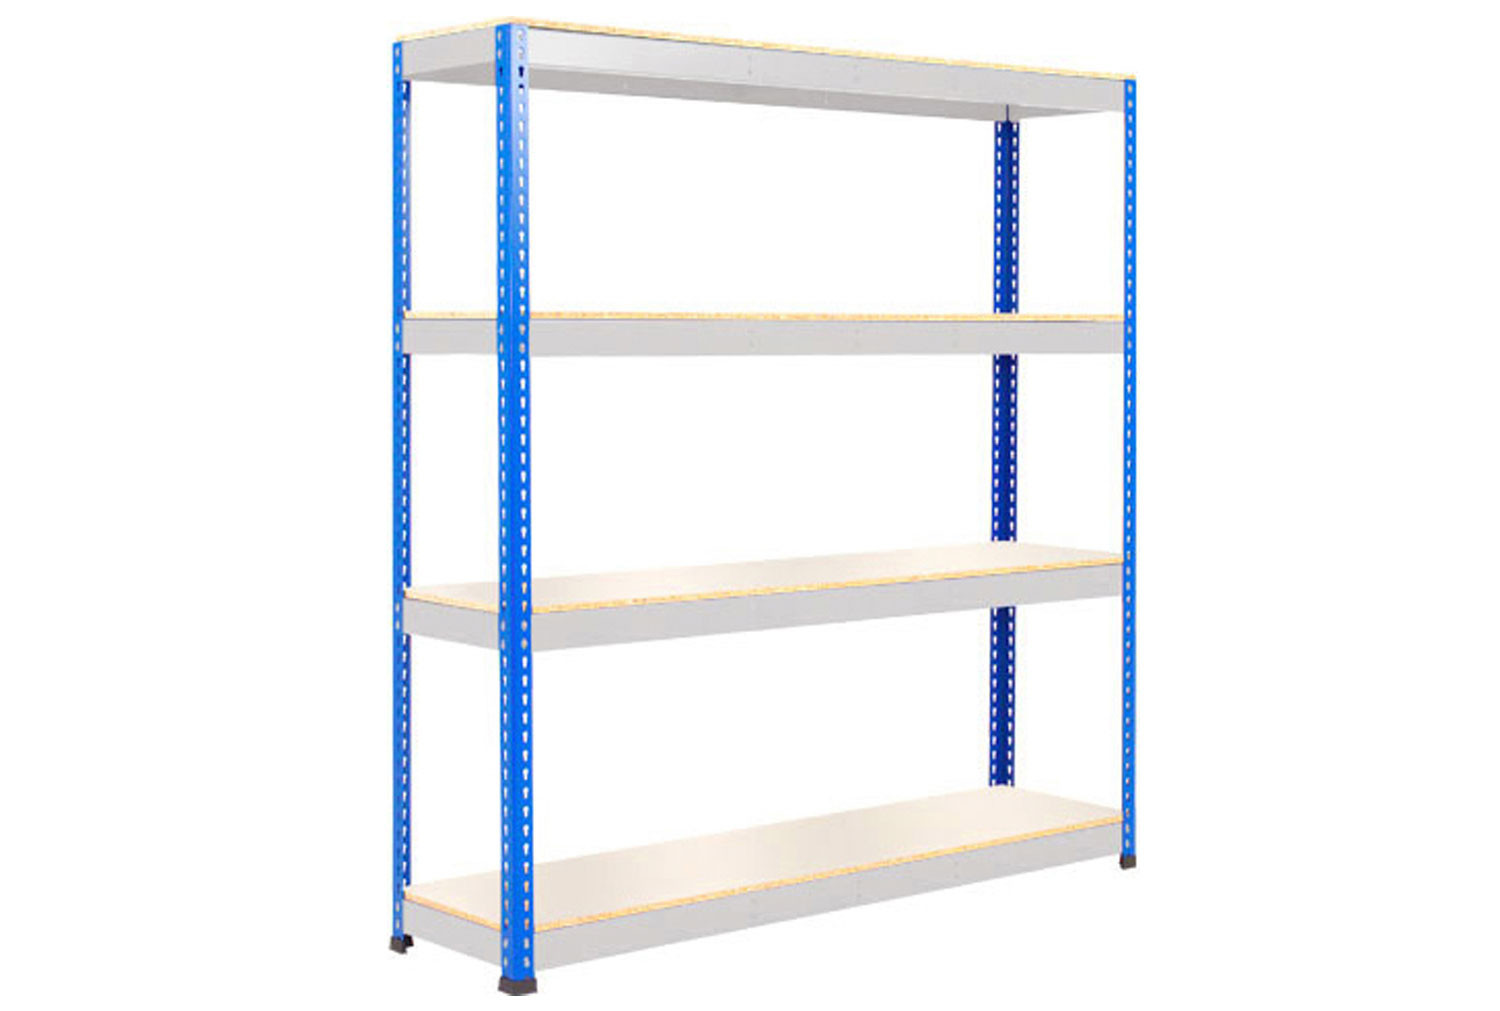 Rapid 1 Heavy Duty Shelving With 4 Melamine Shelves 1525wx2440h (Blue/Grey)